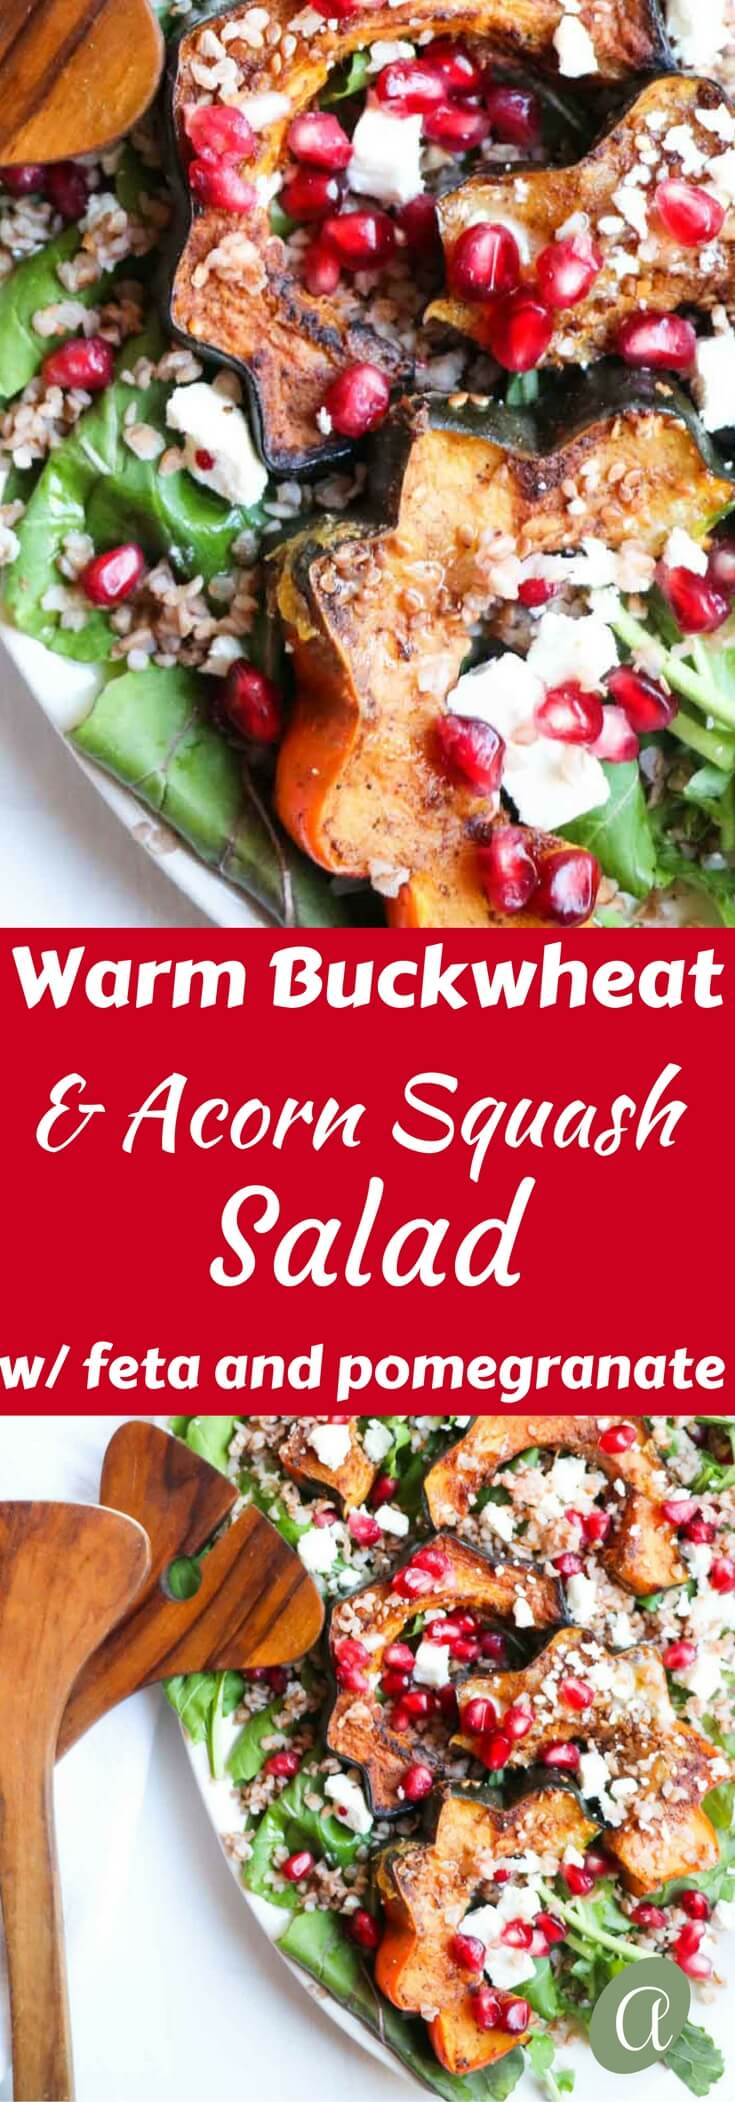 Insanely delicious five-spice roasted acorn squash salad with warm buckwheat, feta cheese, and pomegranate seeds. Gluten-free, festive and seasonal!